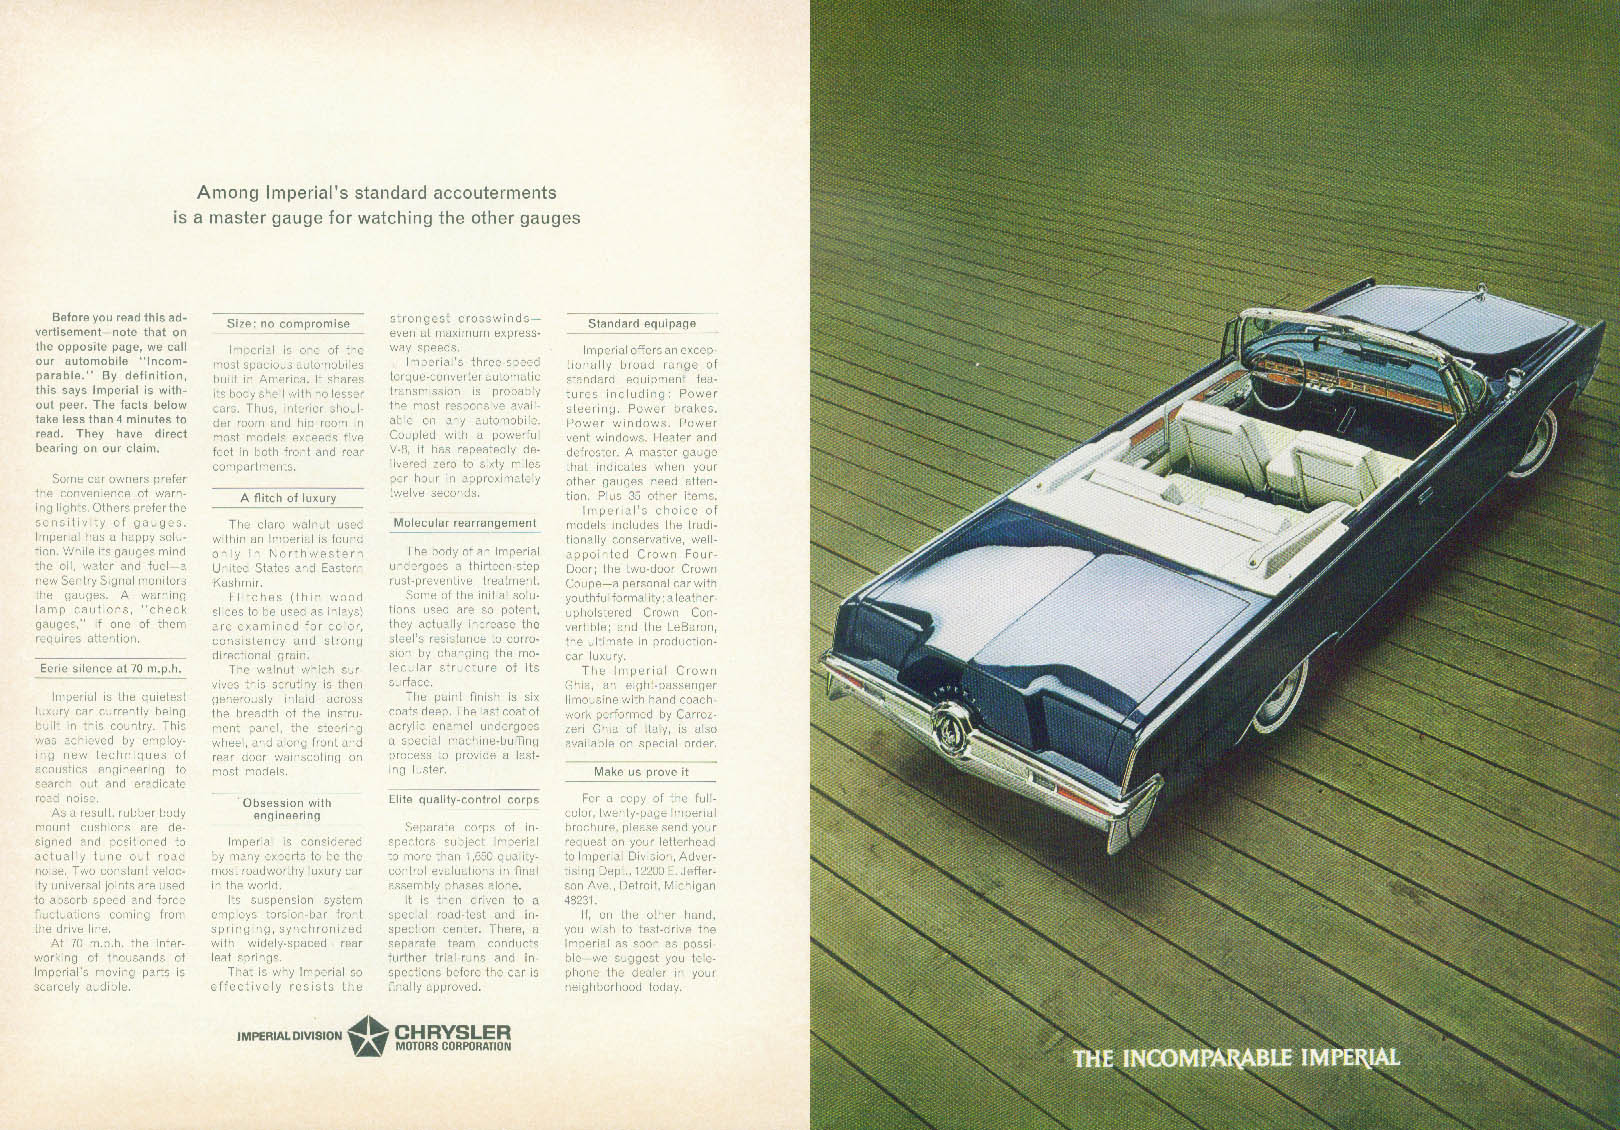 A master gauge for watching the others Imperial Convertible by Chrysler ad 1965